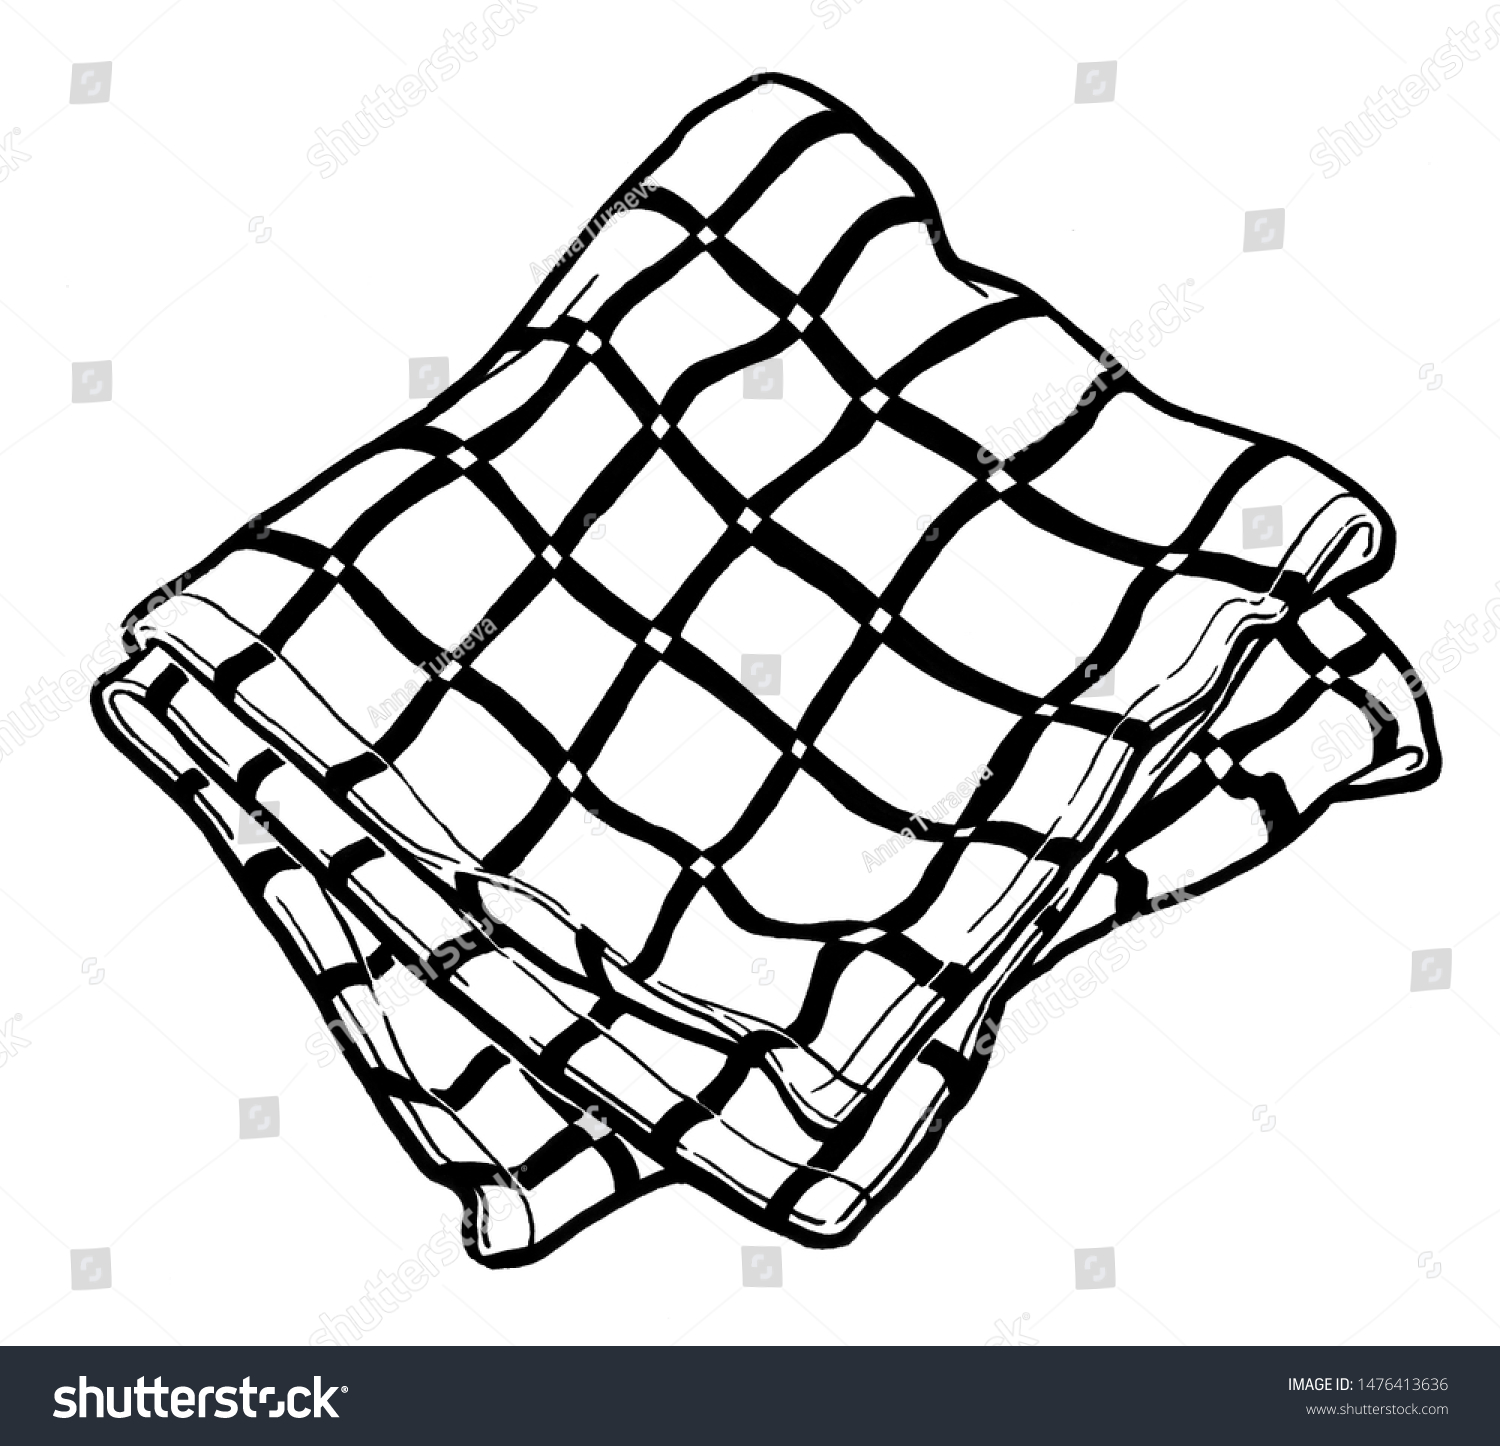 Striped Kitchen Towel Watercolor Hand Drawing Stock Illustration 1476413636